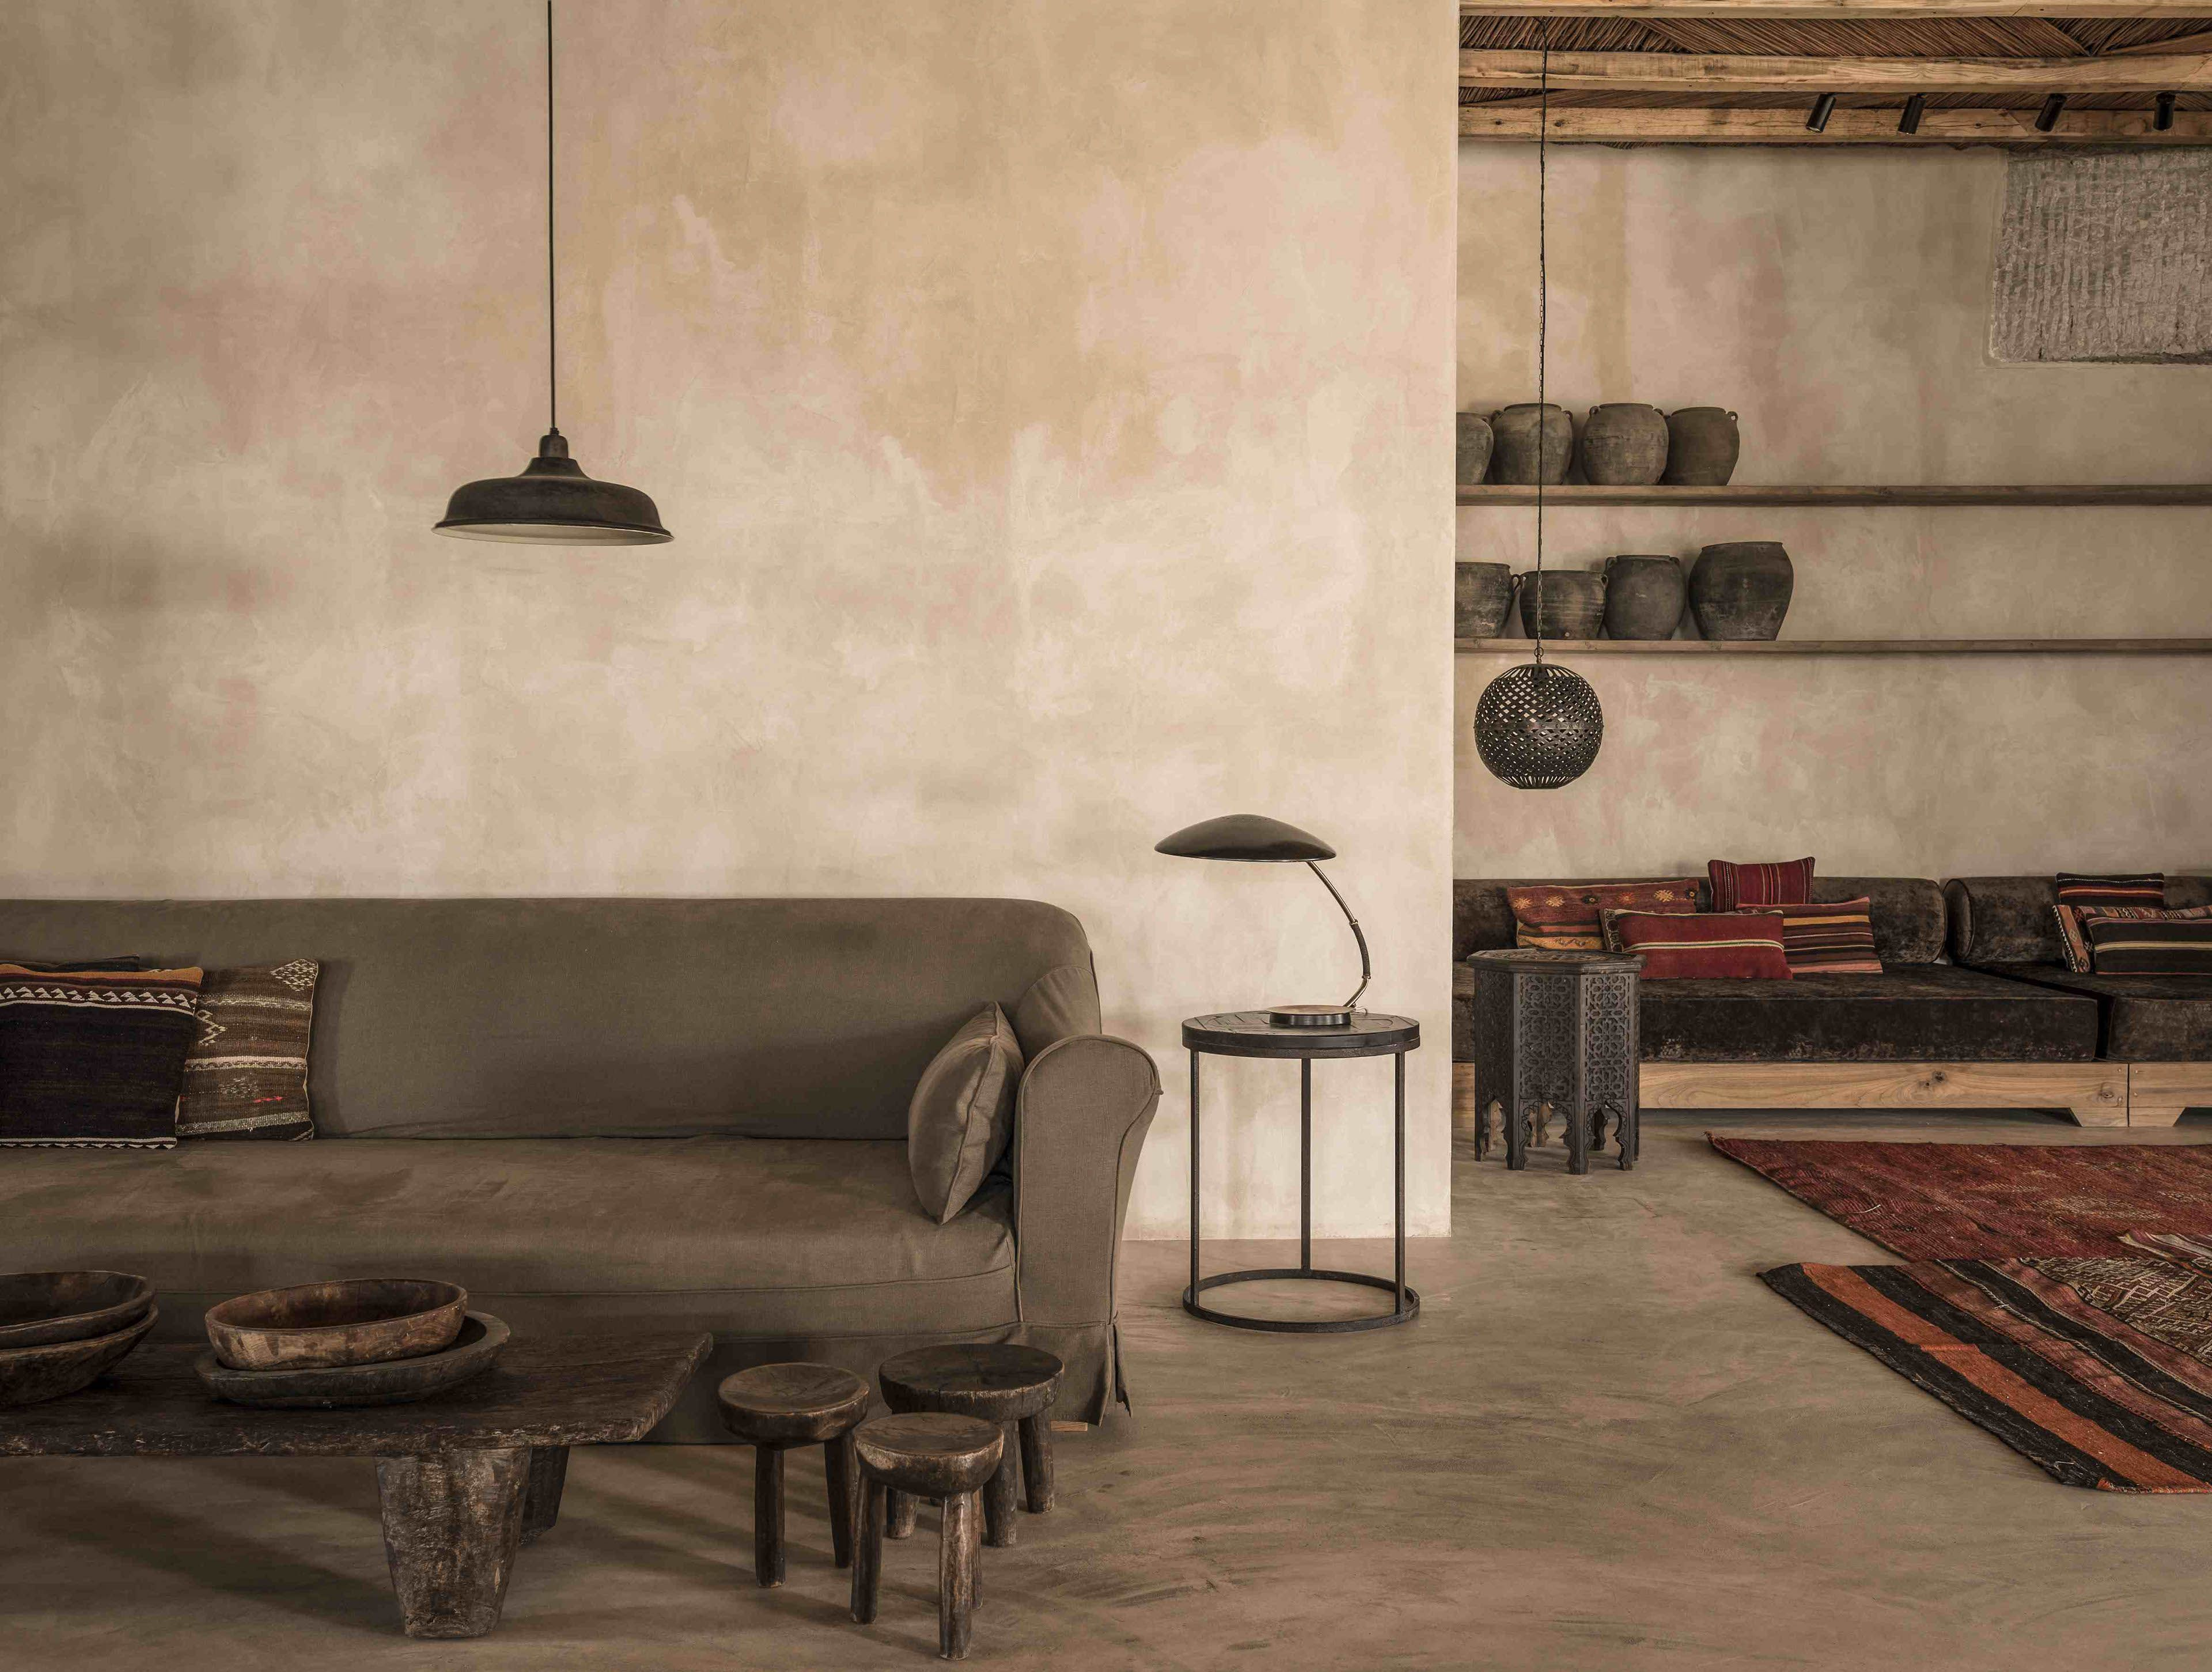 Interior design styling experience concept by annabell kutucu